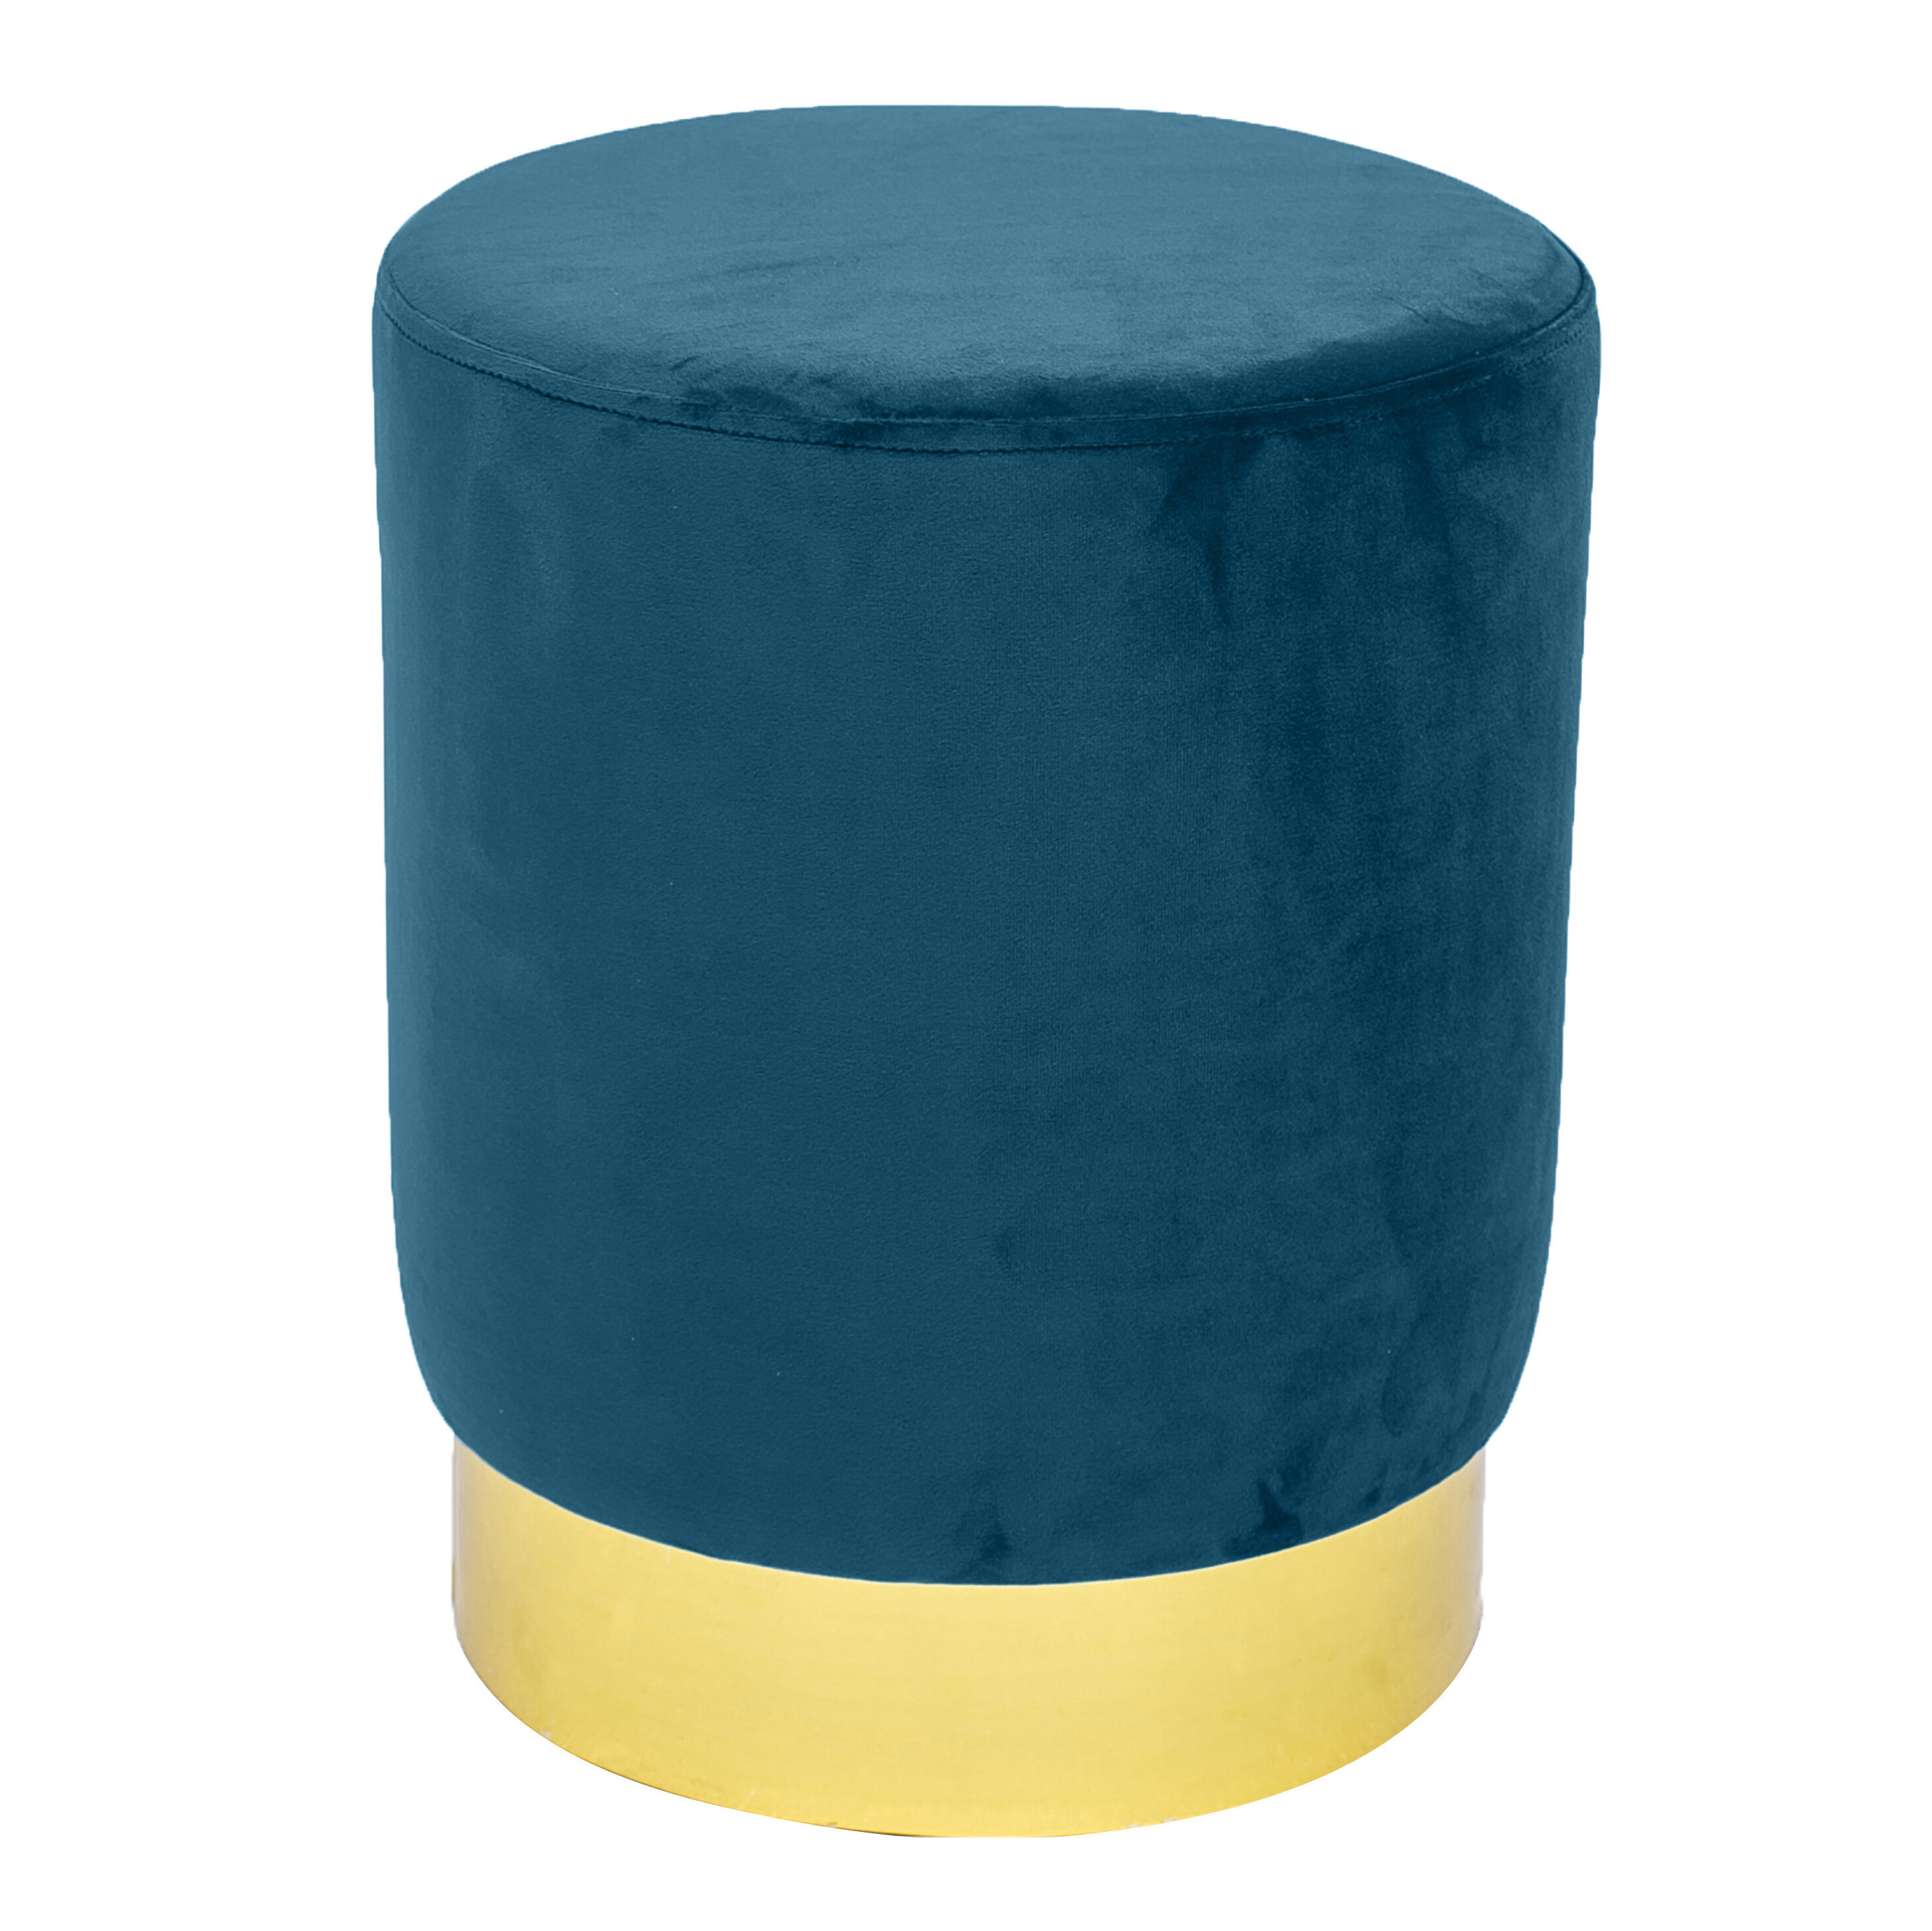 Peachy Witten Velvet Ottoman Caraccident5 Cool Chair Designs And Ideas Caraccident5Info